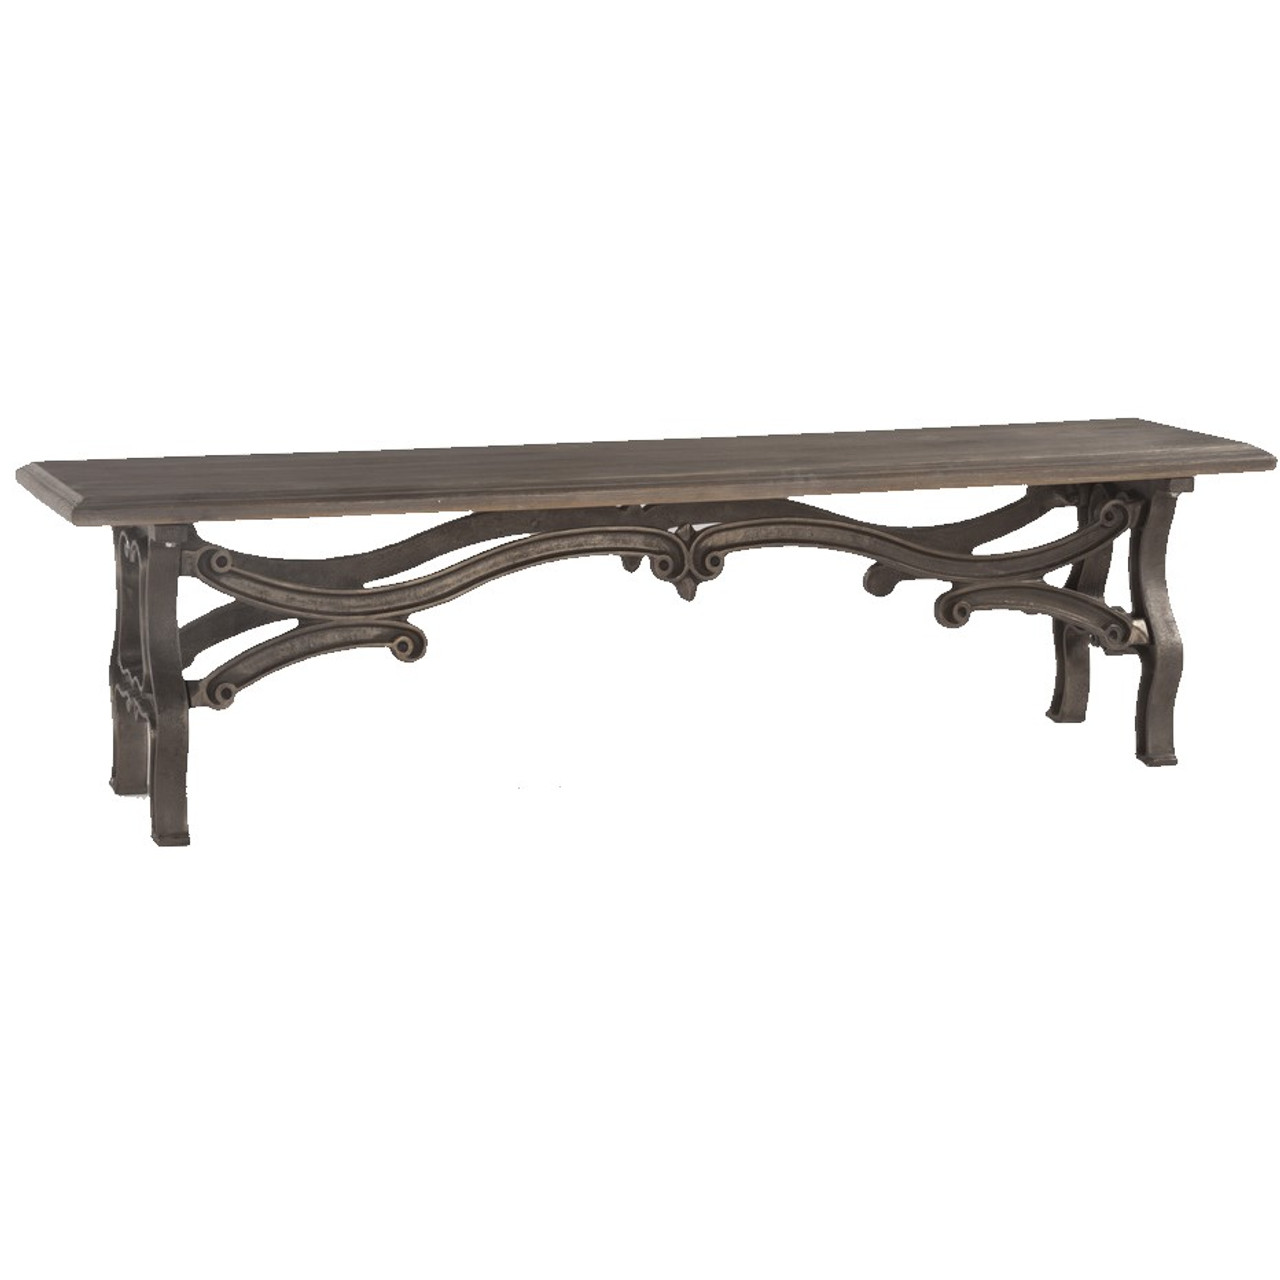 Swell Hobbs Dutch Industrial Iron Wood Dining Bench Pabps2019 Chair Design Images Pabps2019Com